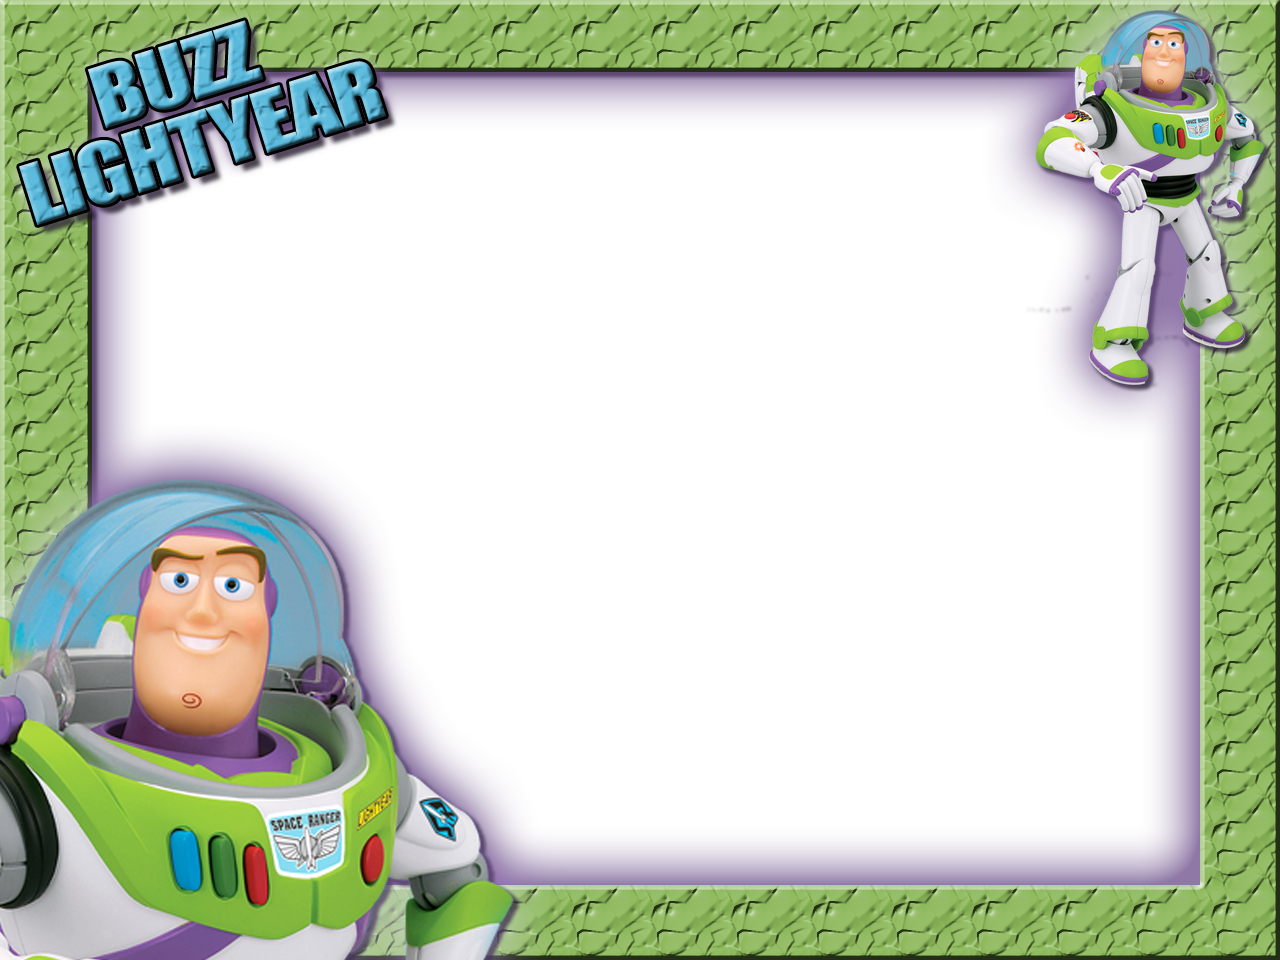 Buzz transparent black background. Kids frame with lightyear